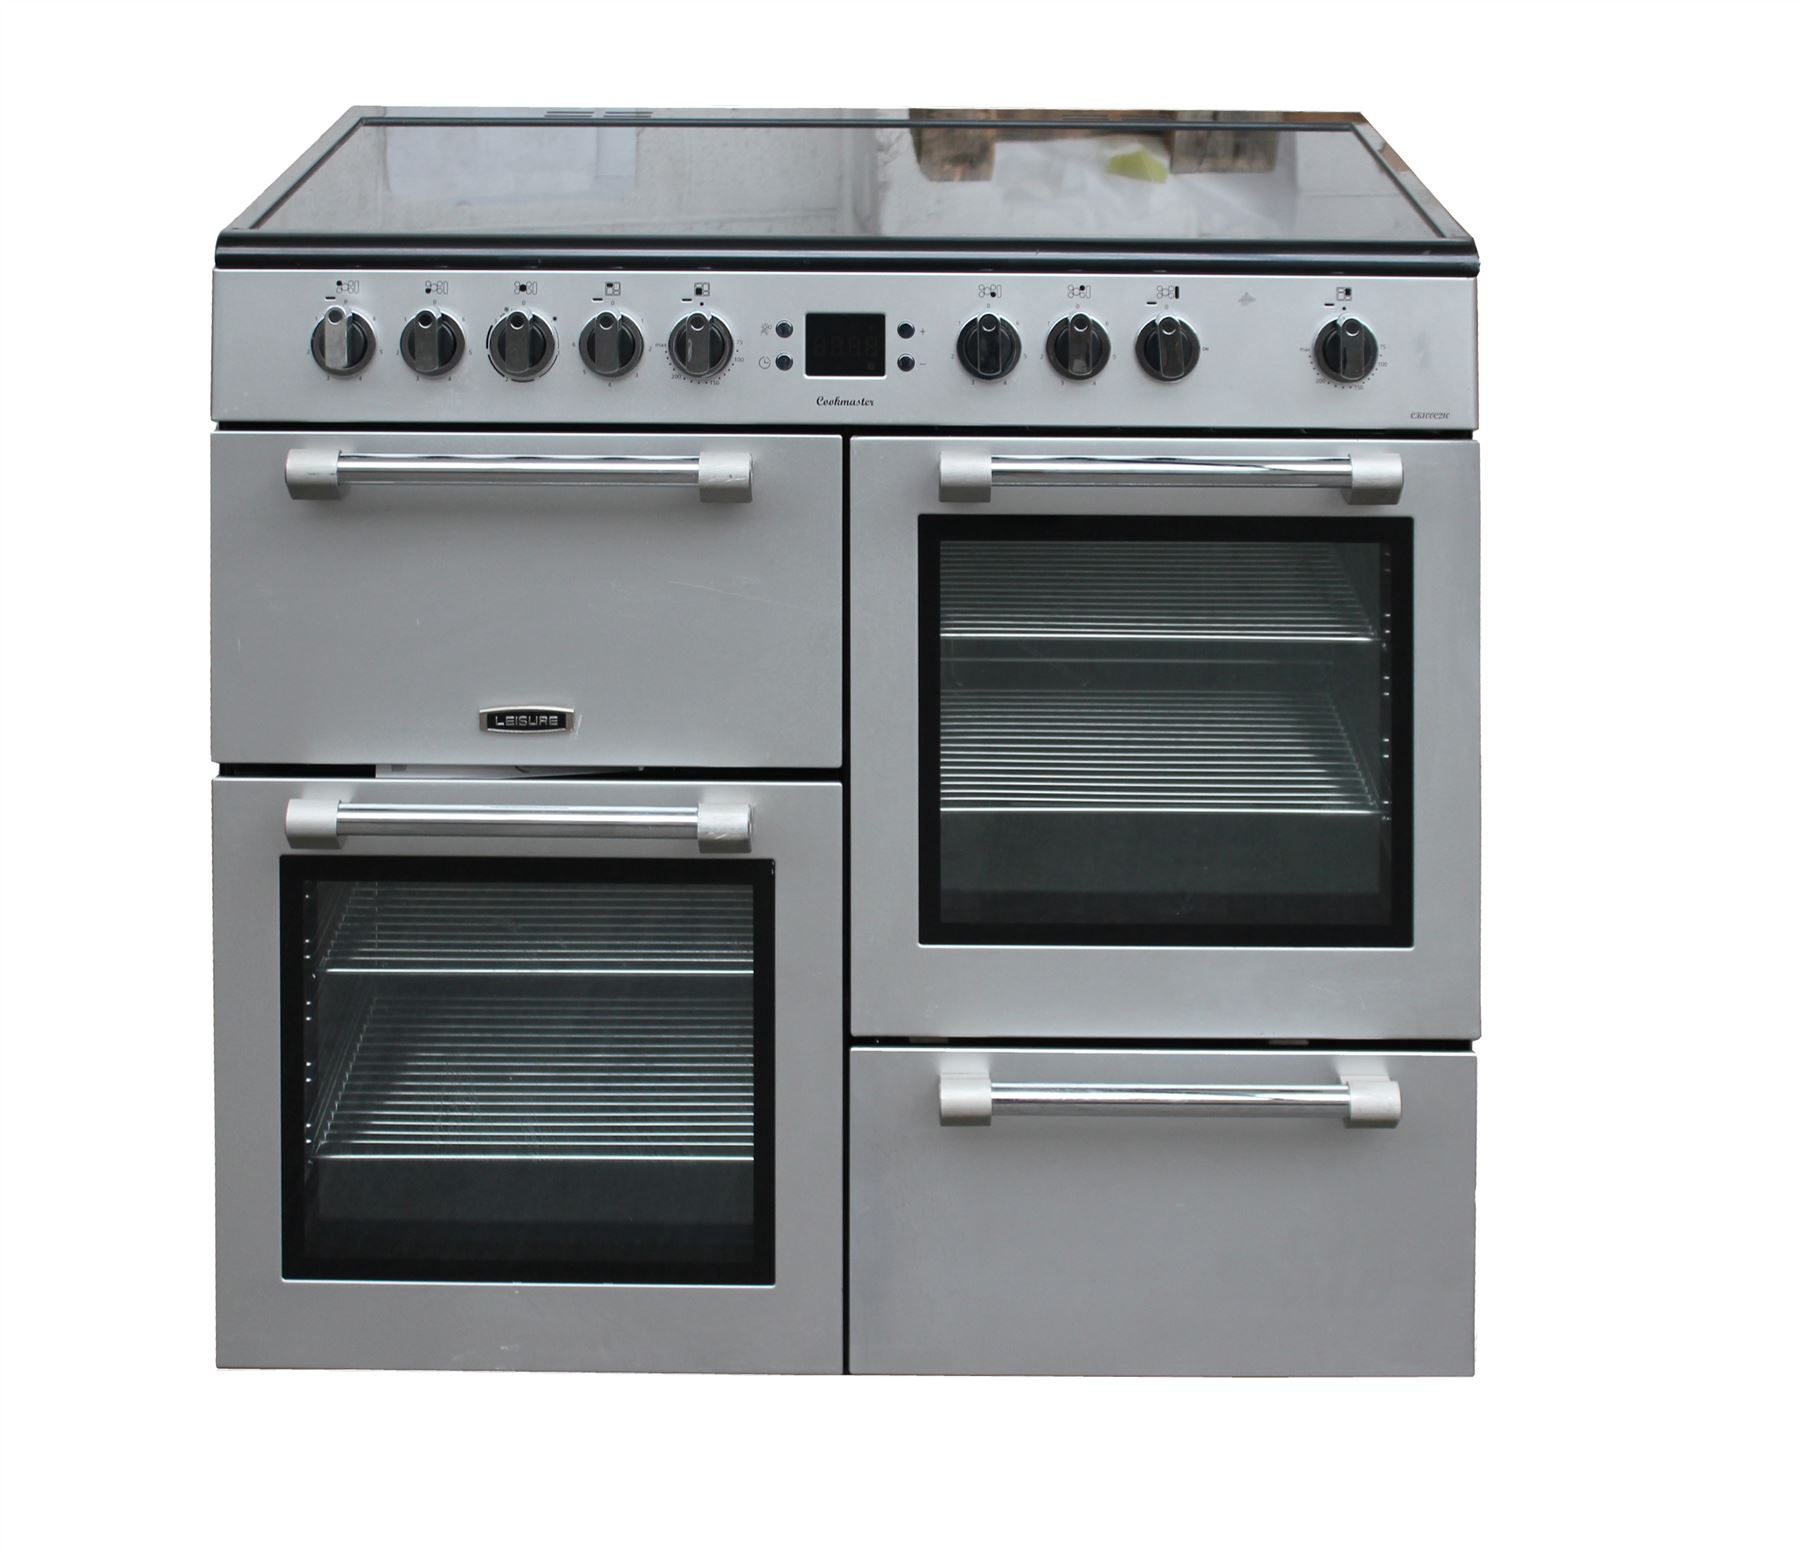 Leisure Electric Range Cooker 100 Cm Ceramic Hob 2 Ovens